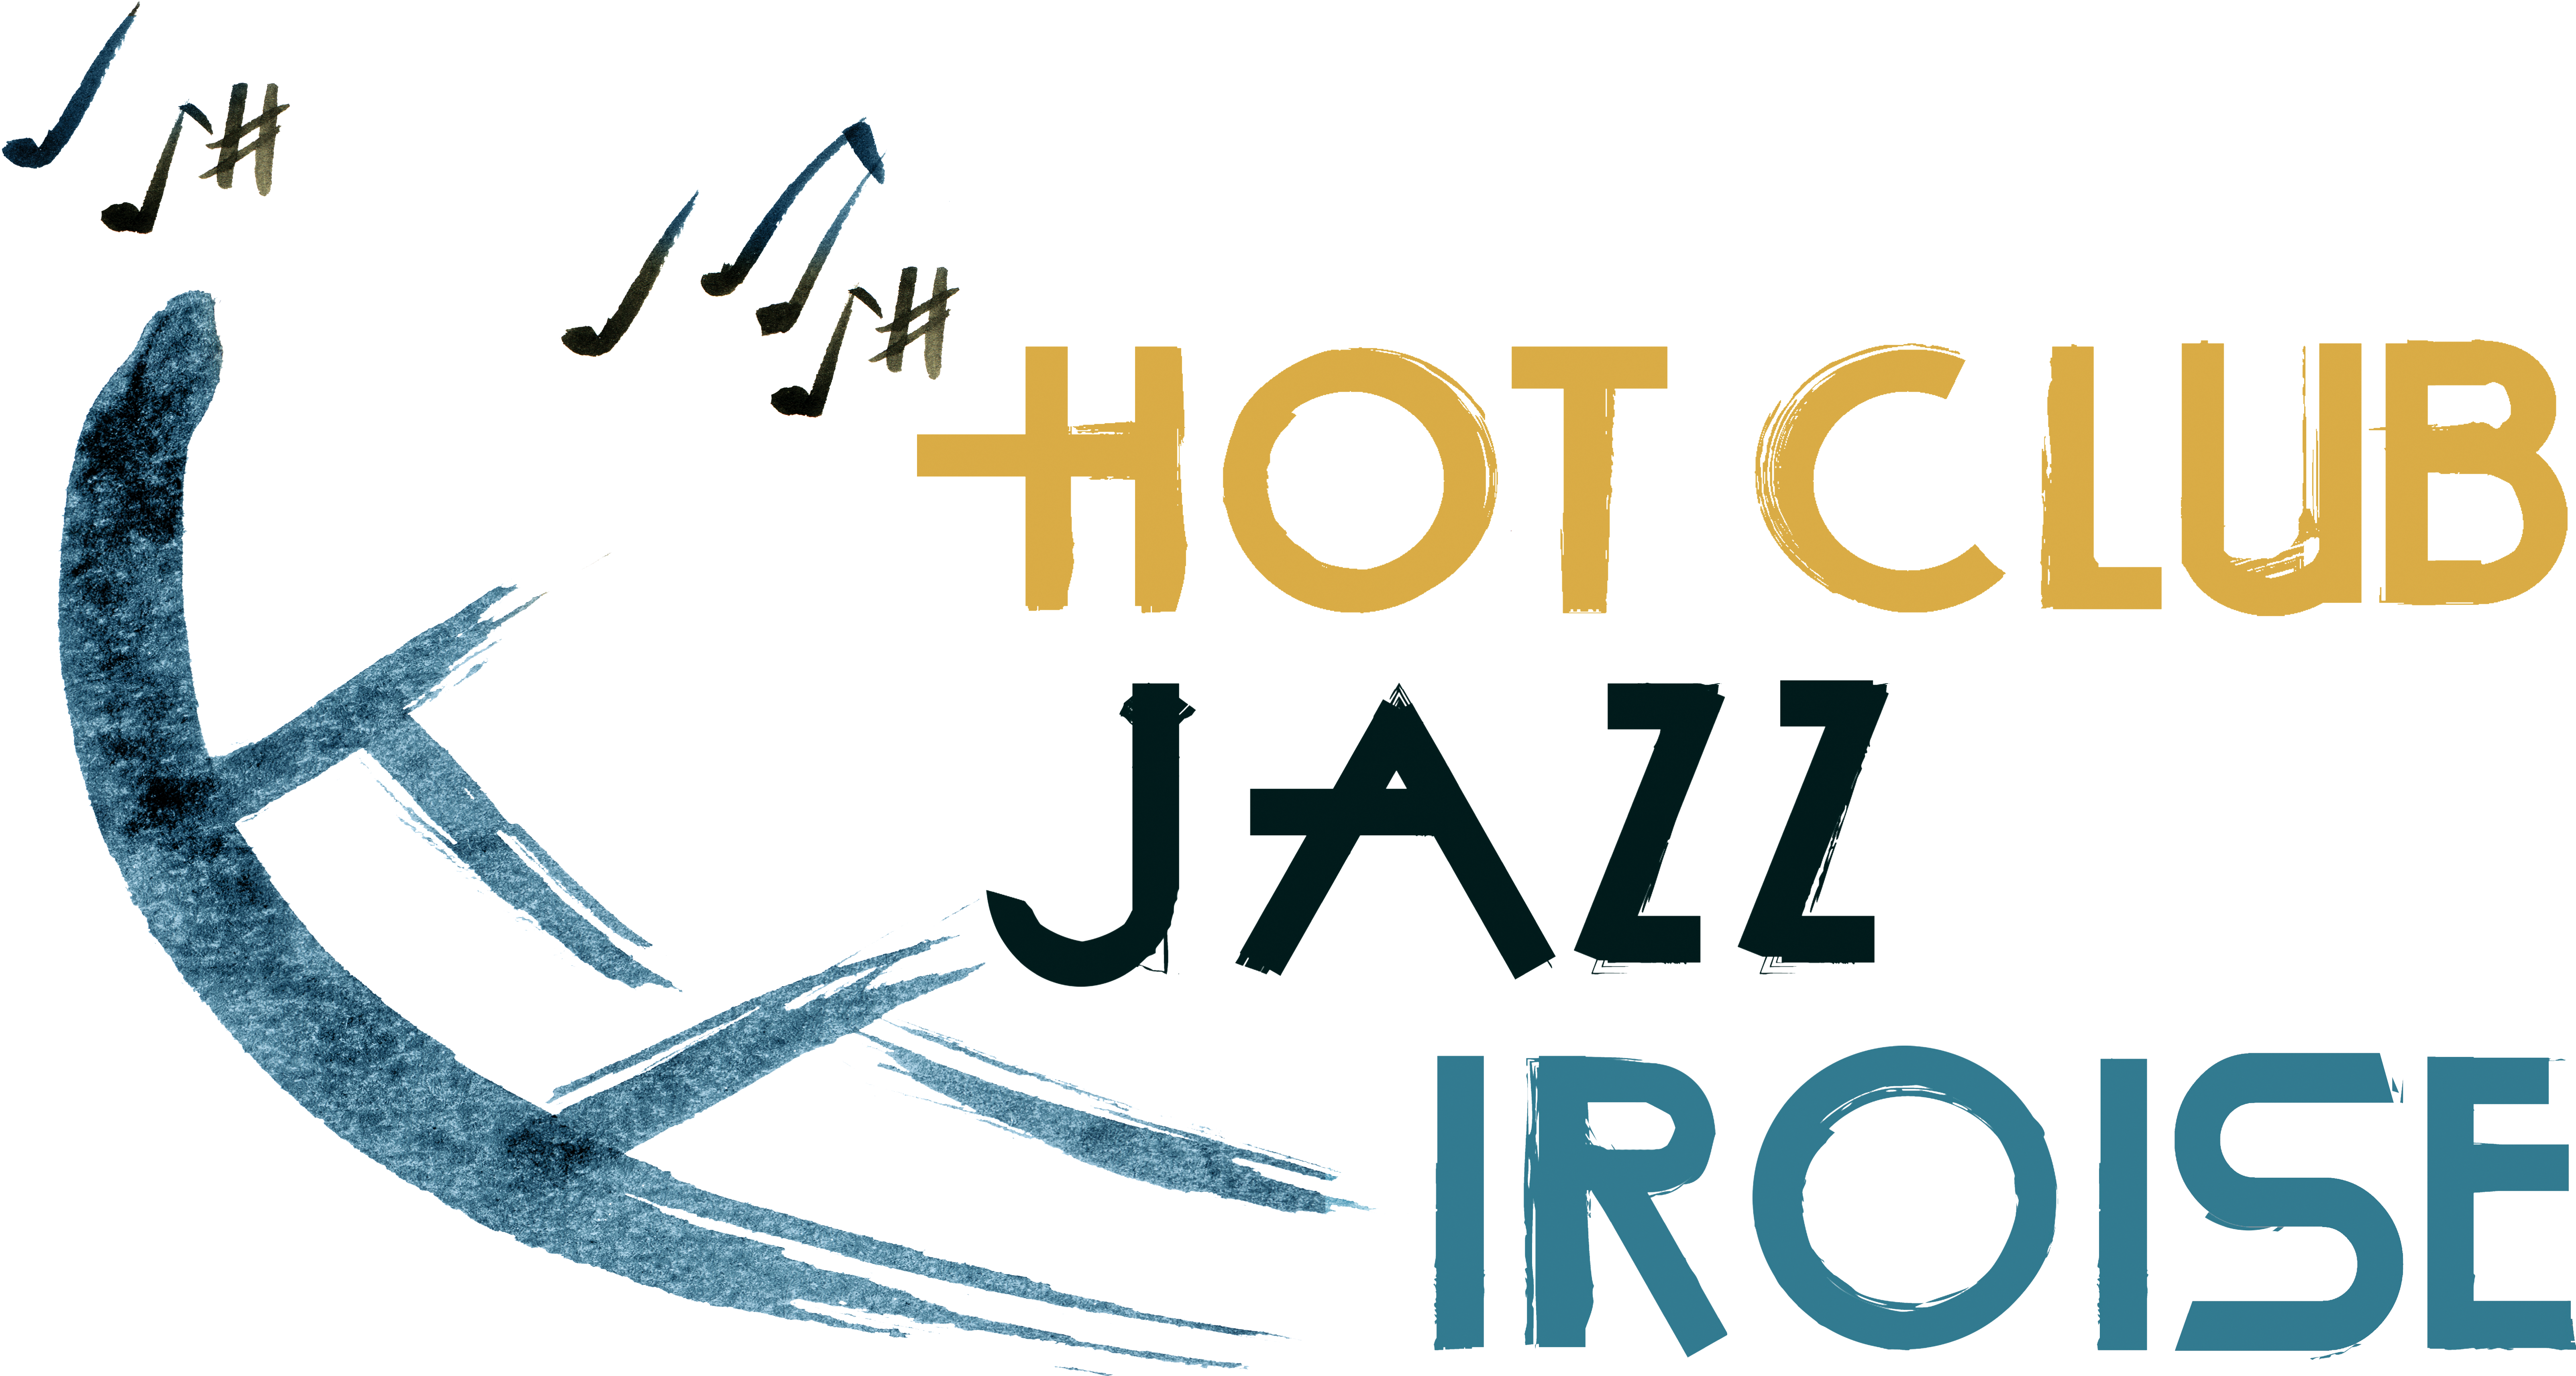 Hot Club Jazz Iroise